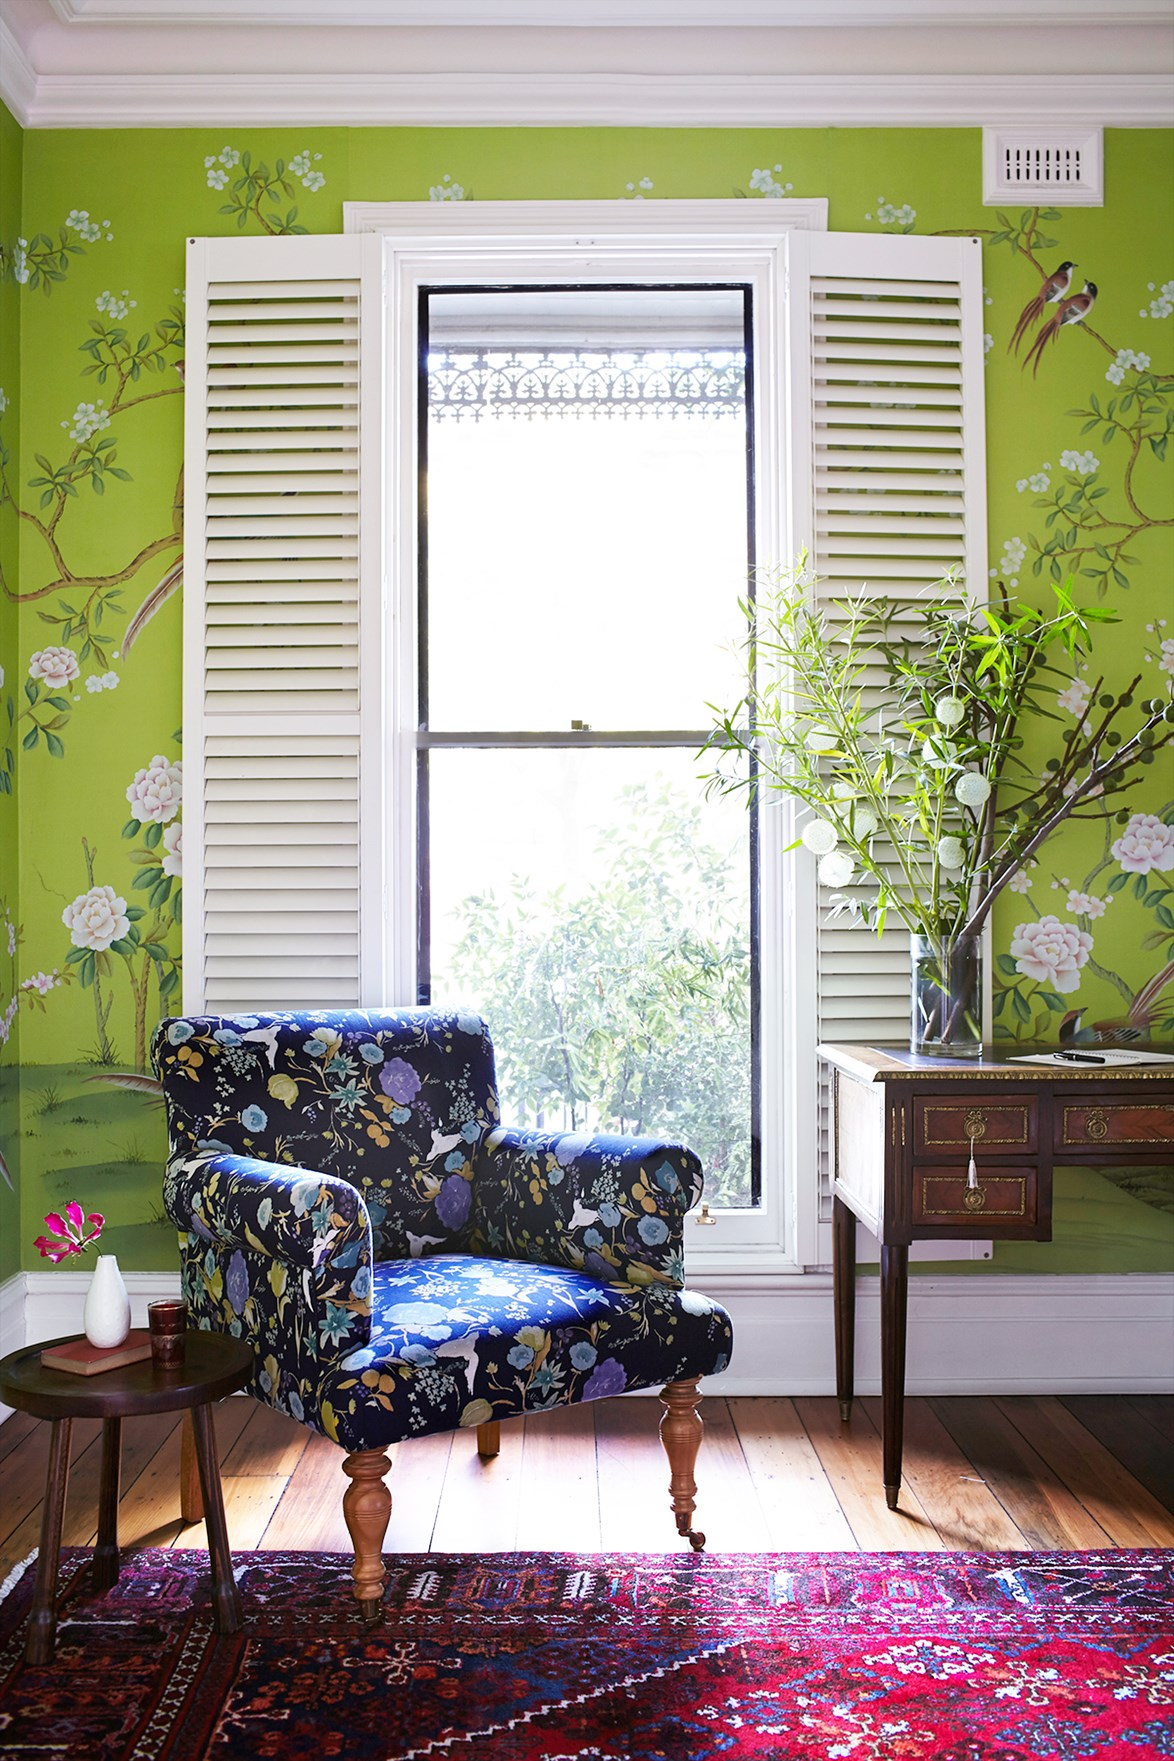 Zesty lime-green floral wallpaper plays off the traditional elements of this [Grand Victorian-era home in Melbourne](http://www.homestolove.com.au/grand-victorian-home-gets-a-colourful-personality-3642) to create a vibrant, modern feel. *Photo: Alicia Taylor / Australian House & Garden*